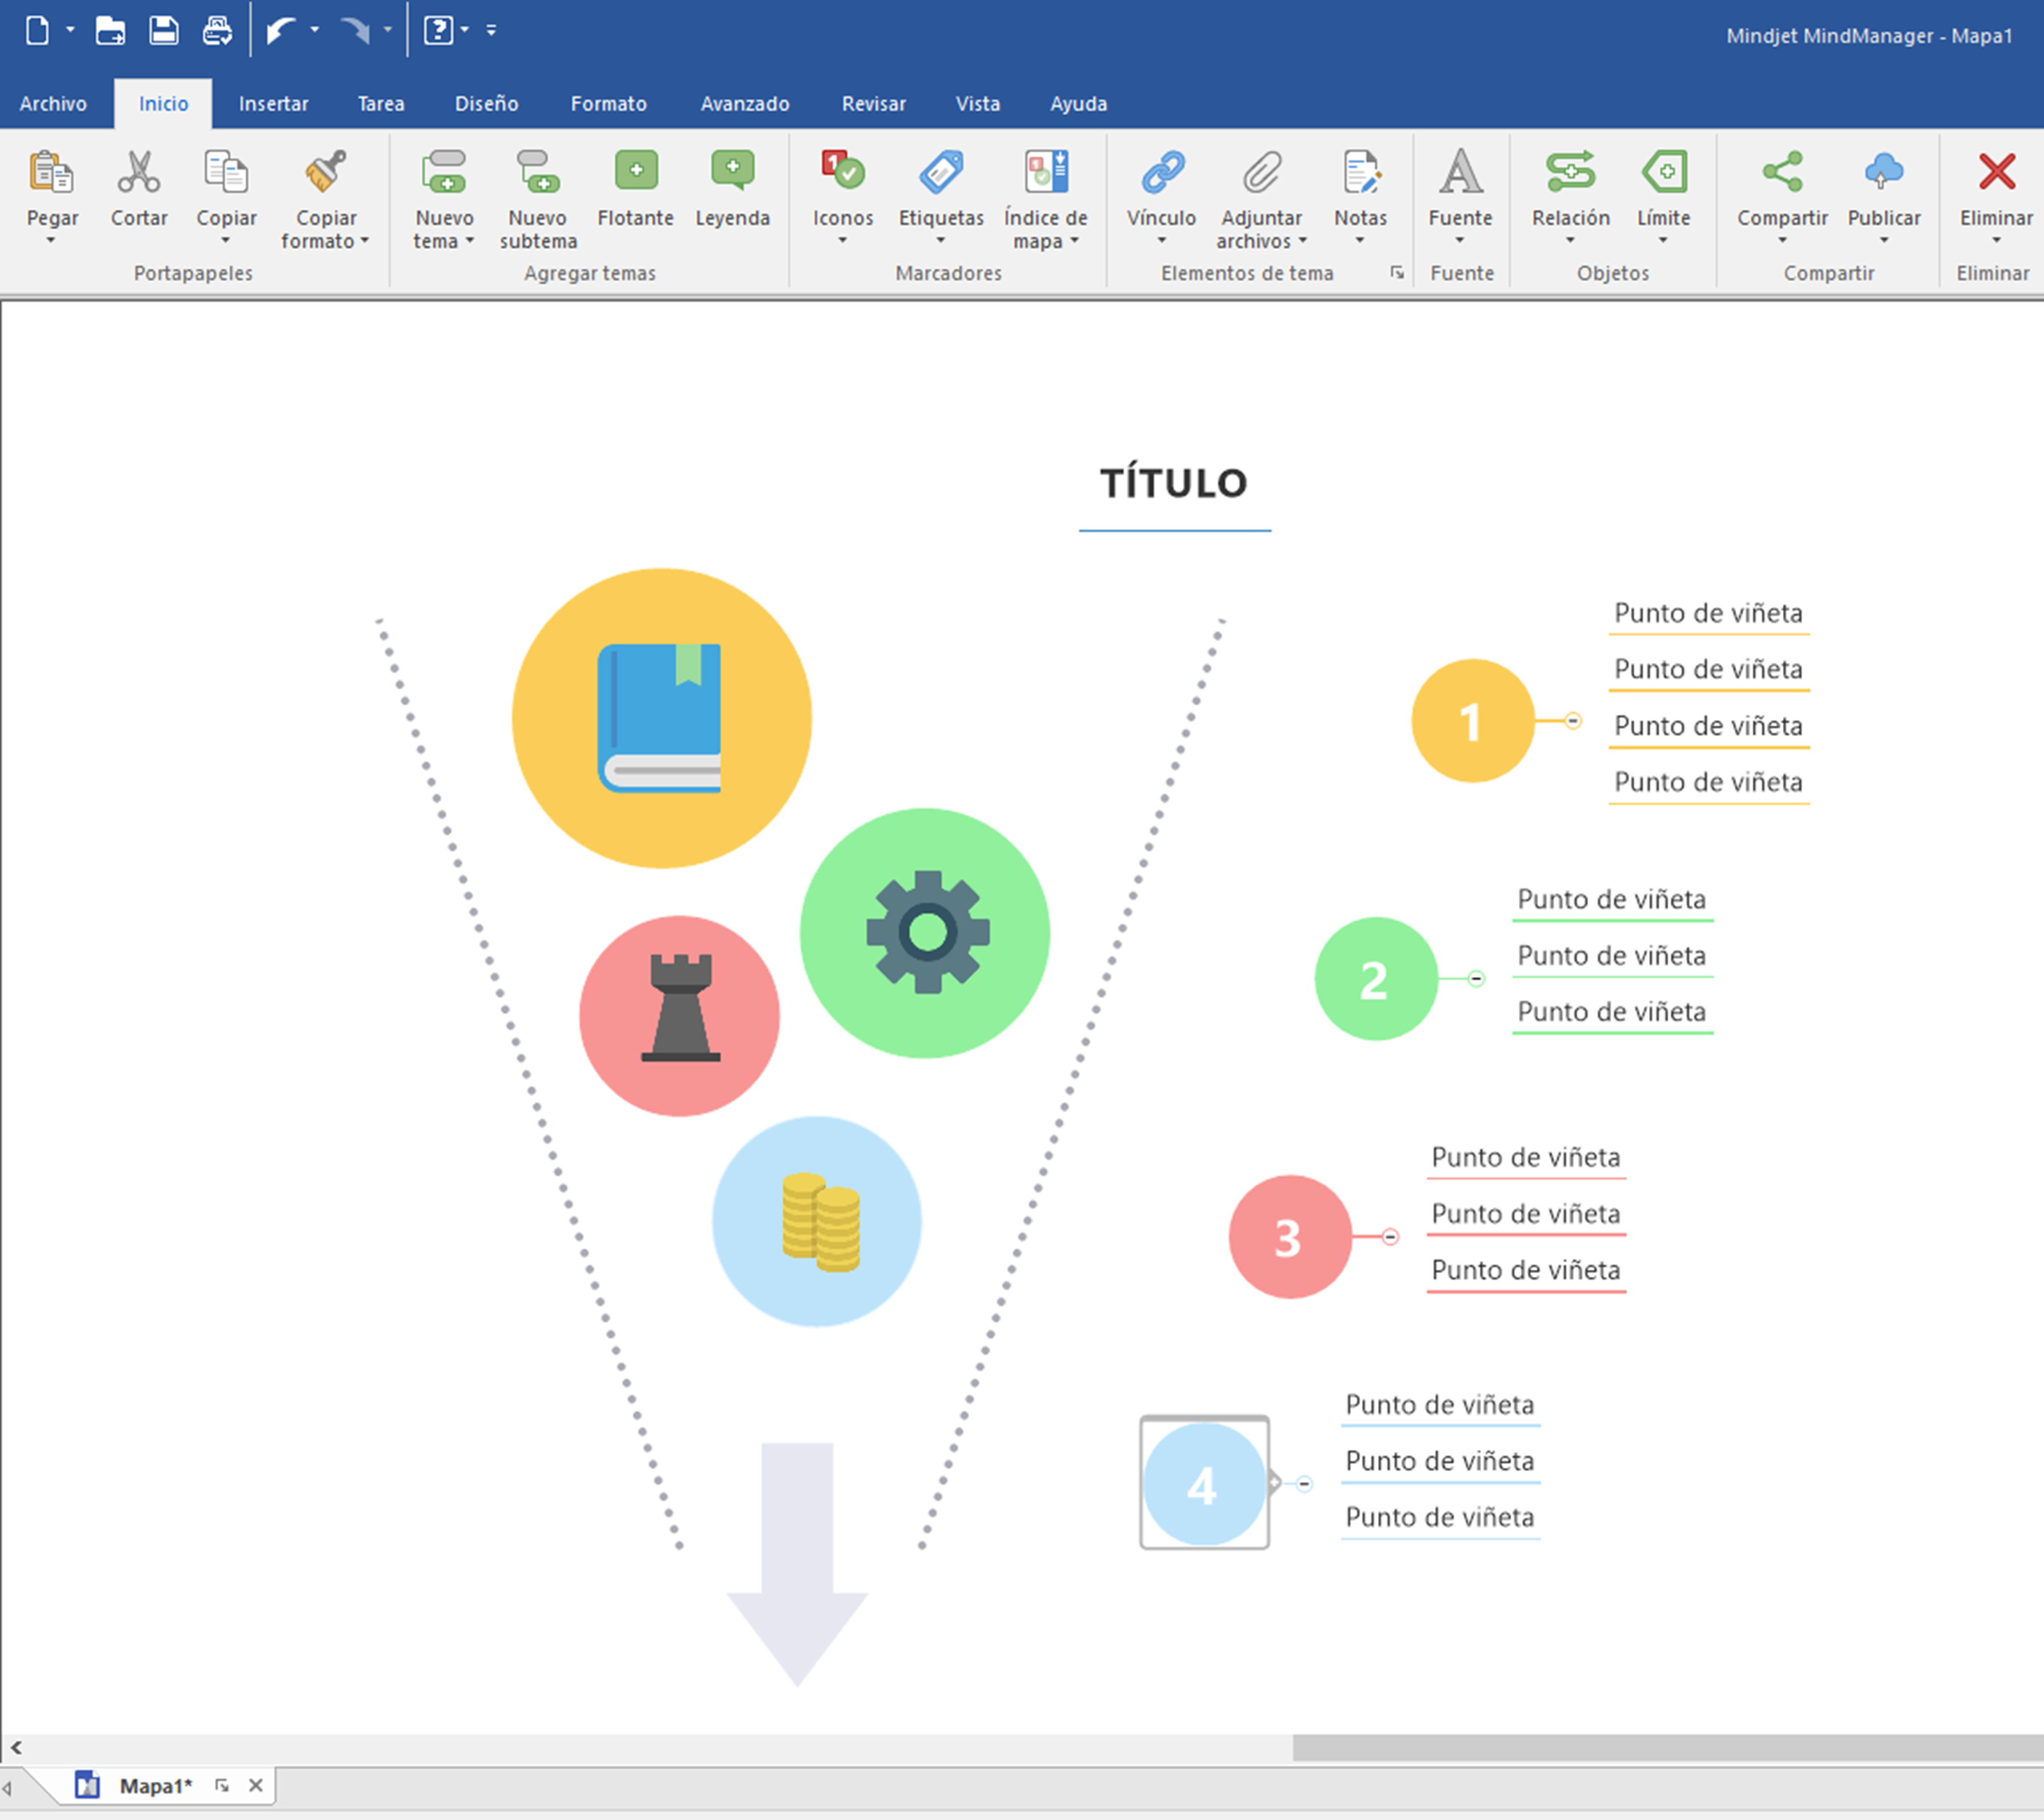 MindManager 2019 for Windows Spanish interface